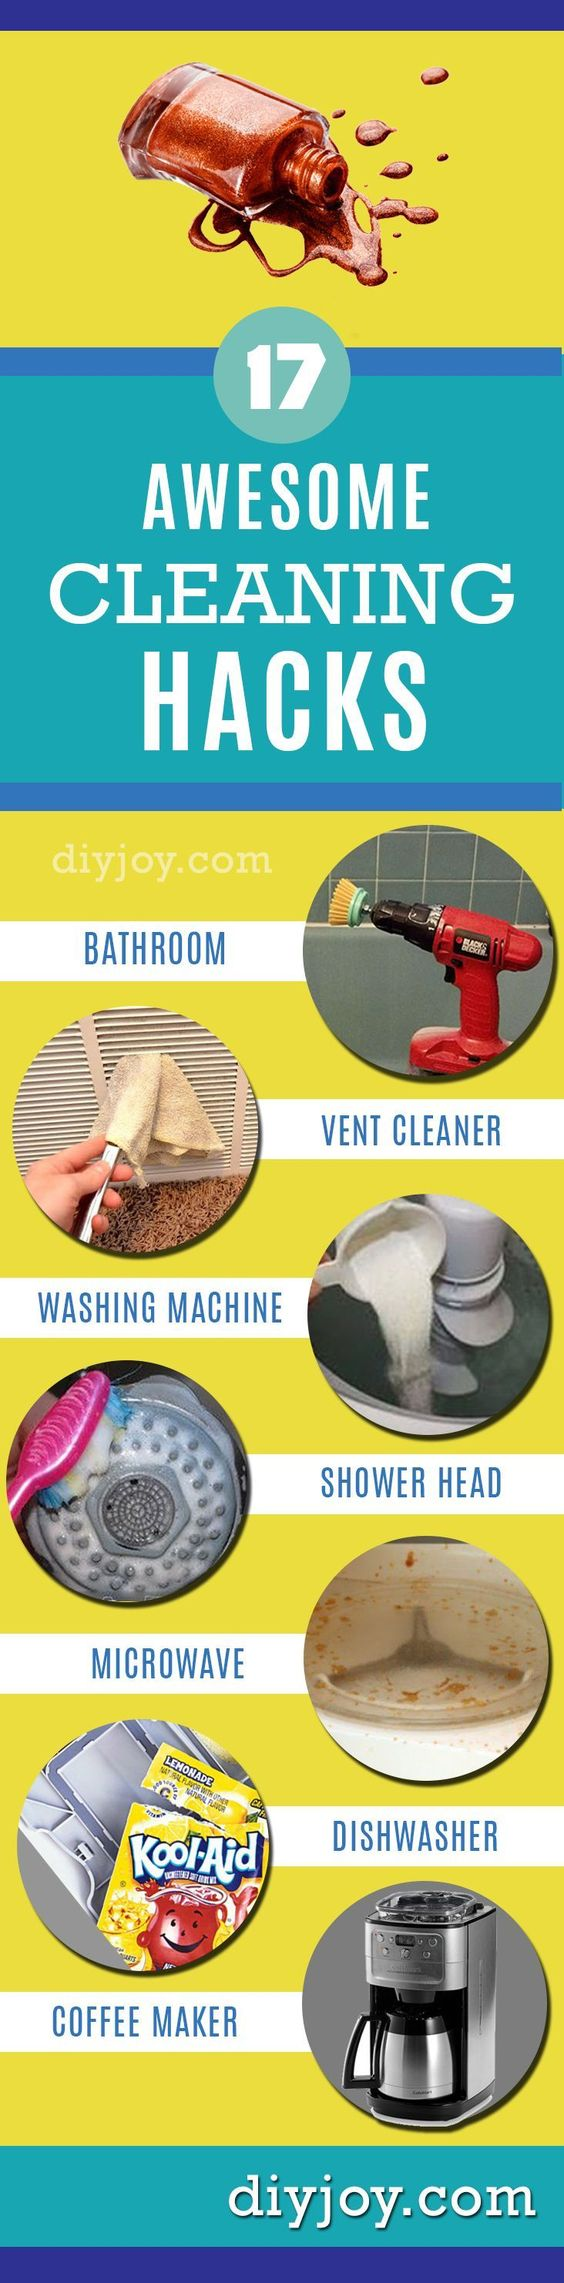 DIY Cleaning Hacks For Every Room In Your House | EASY DIYs http://diyjoy.com/cleaning-tips-life-hacks: